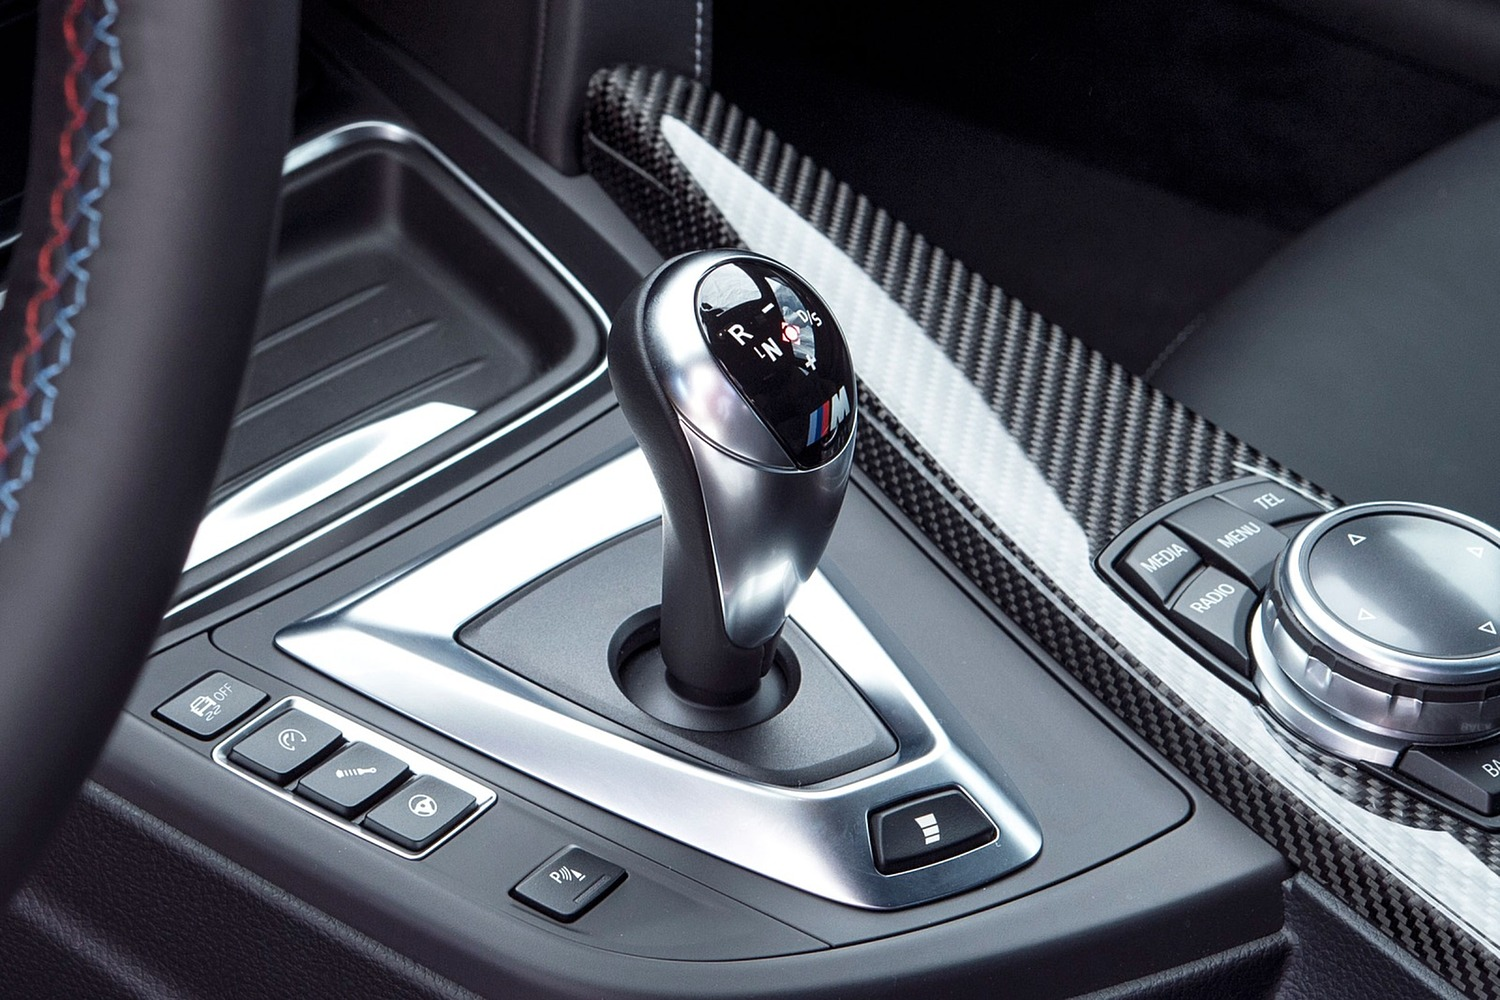 BMW M4 Coupe Shifter (2015 model year shown)